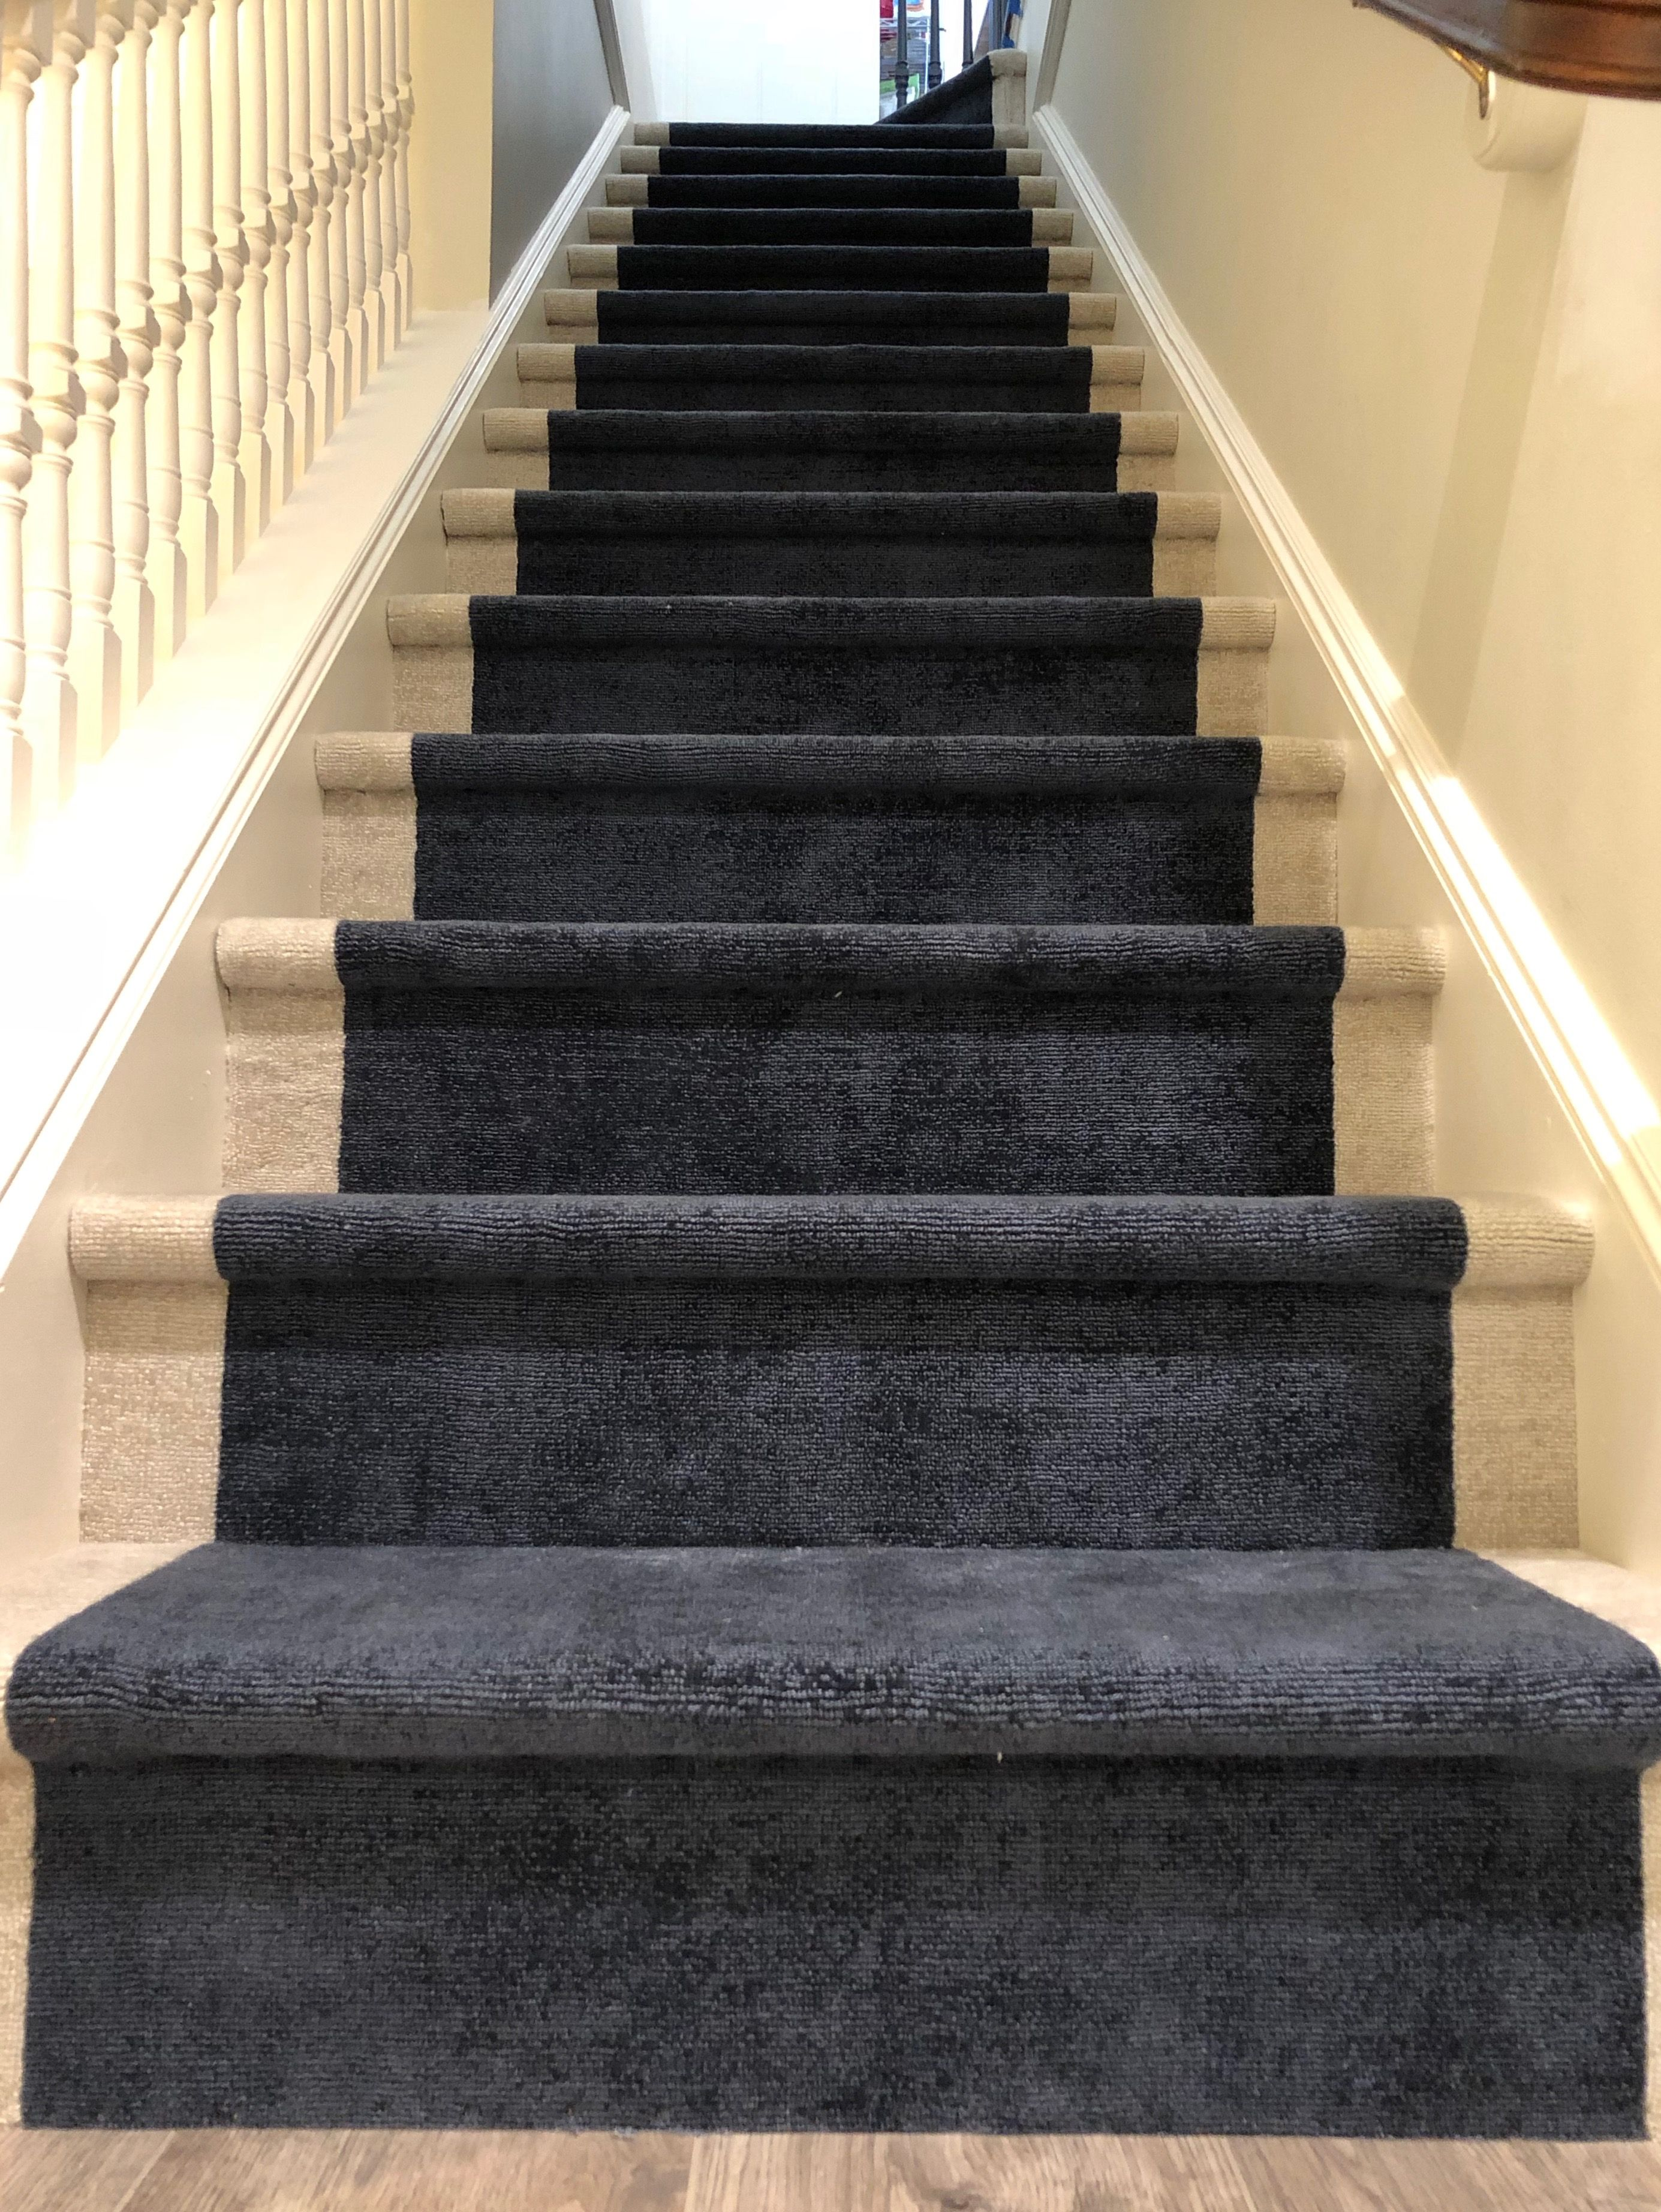 Our Beautiful Custom Stair Runner Installation Made Out Of Two Broadloom Carpets By Rosecore Stair Runner Installation Stair Runner Carpet Modular Carpet Tiles